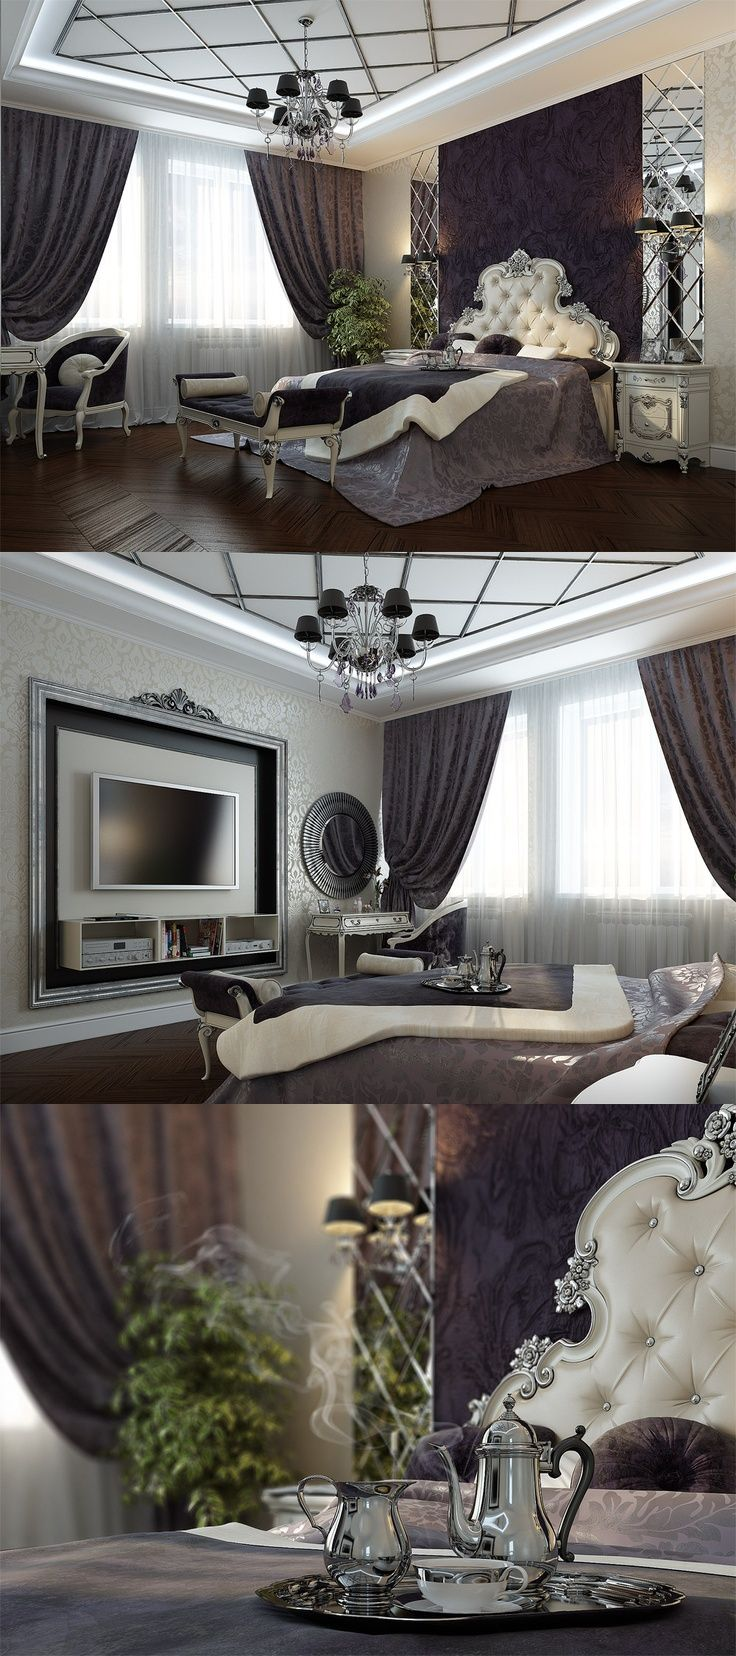 .glam bedroom. I think a straight, tufted headboard would fit with this look better. Gorgeous textures & colors | Home Decor